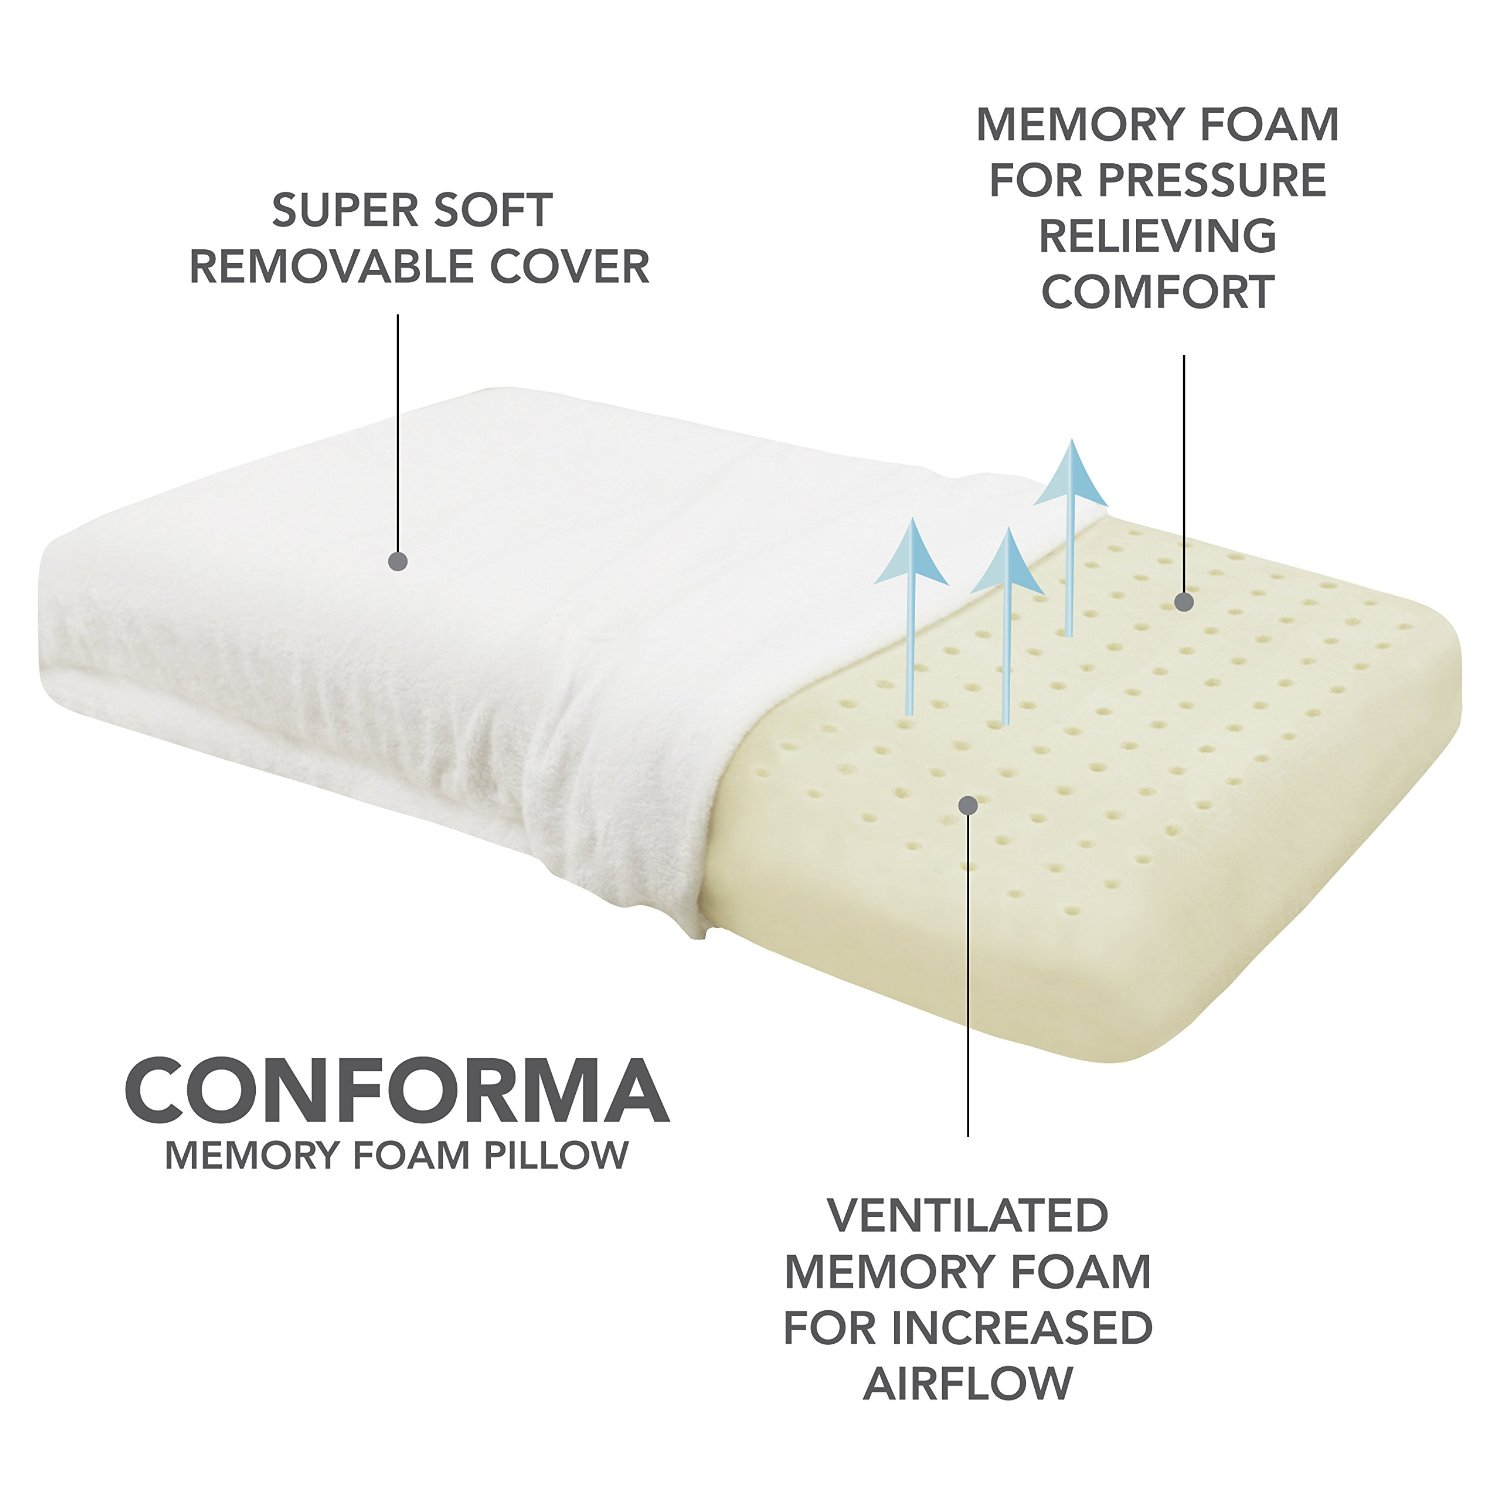 Classic Brands Memory Foam Mattress Full Size Of King Sizeawesome Dimensions Of King Size Bed